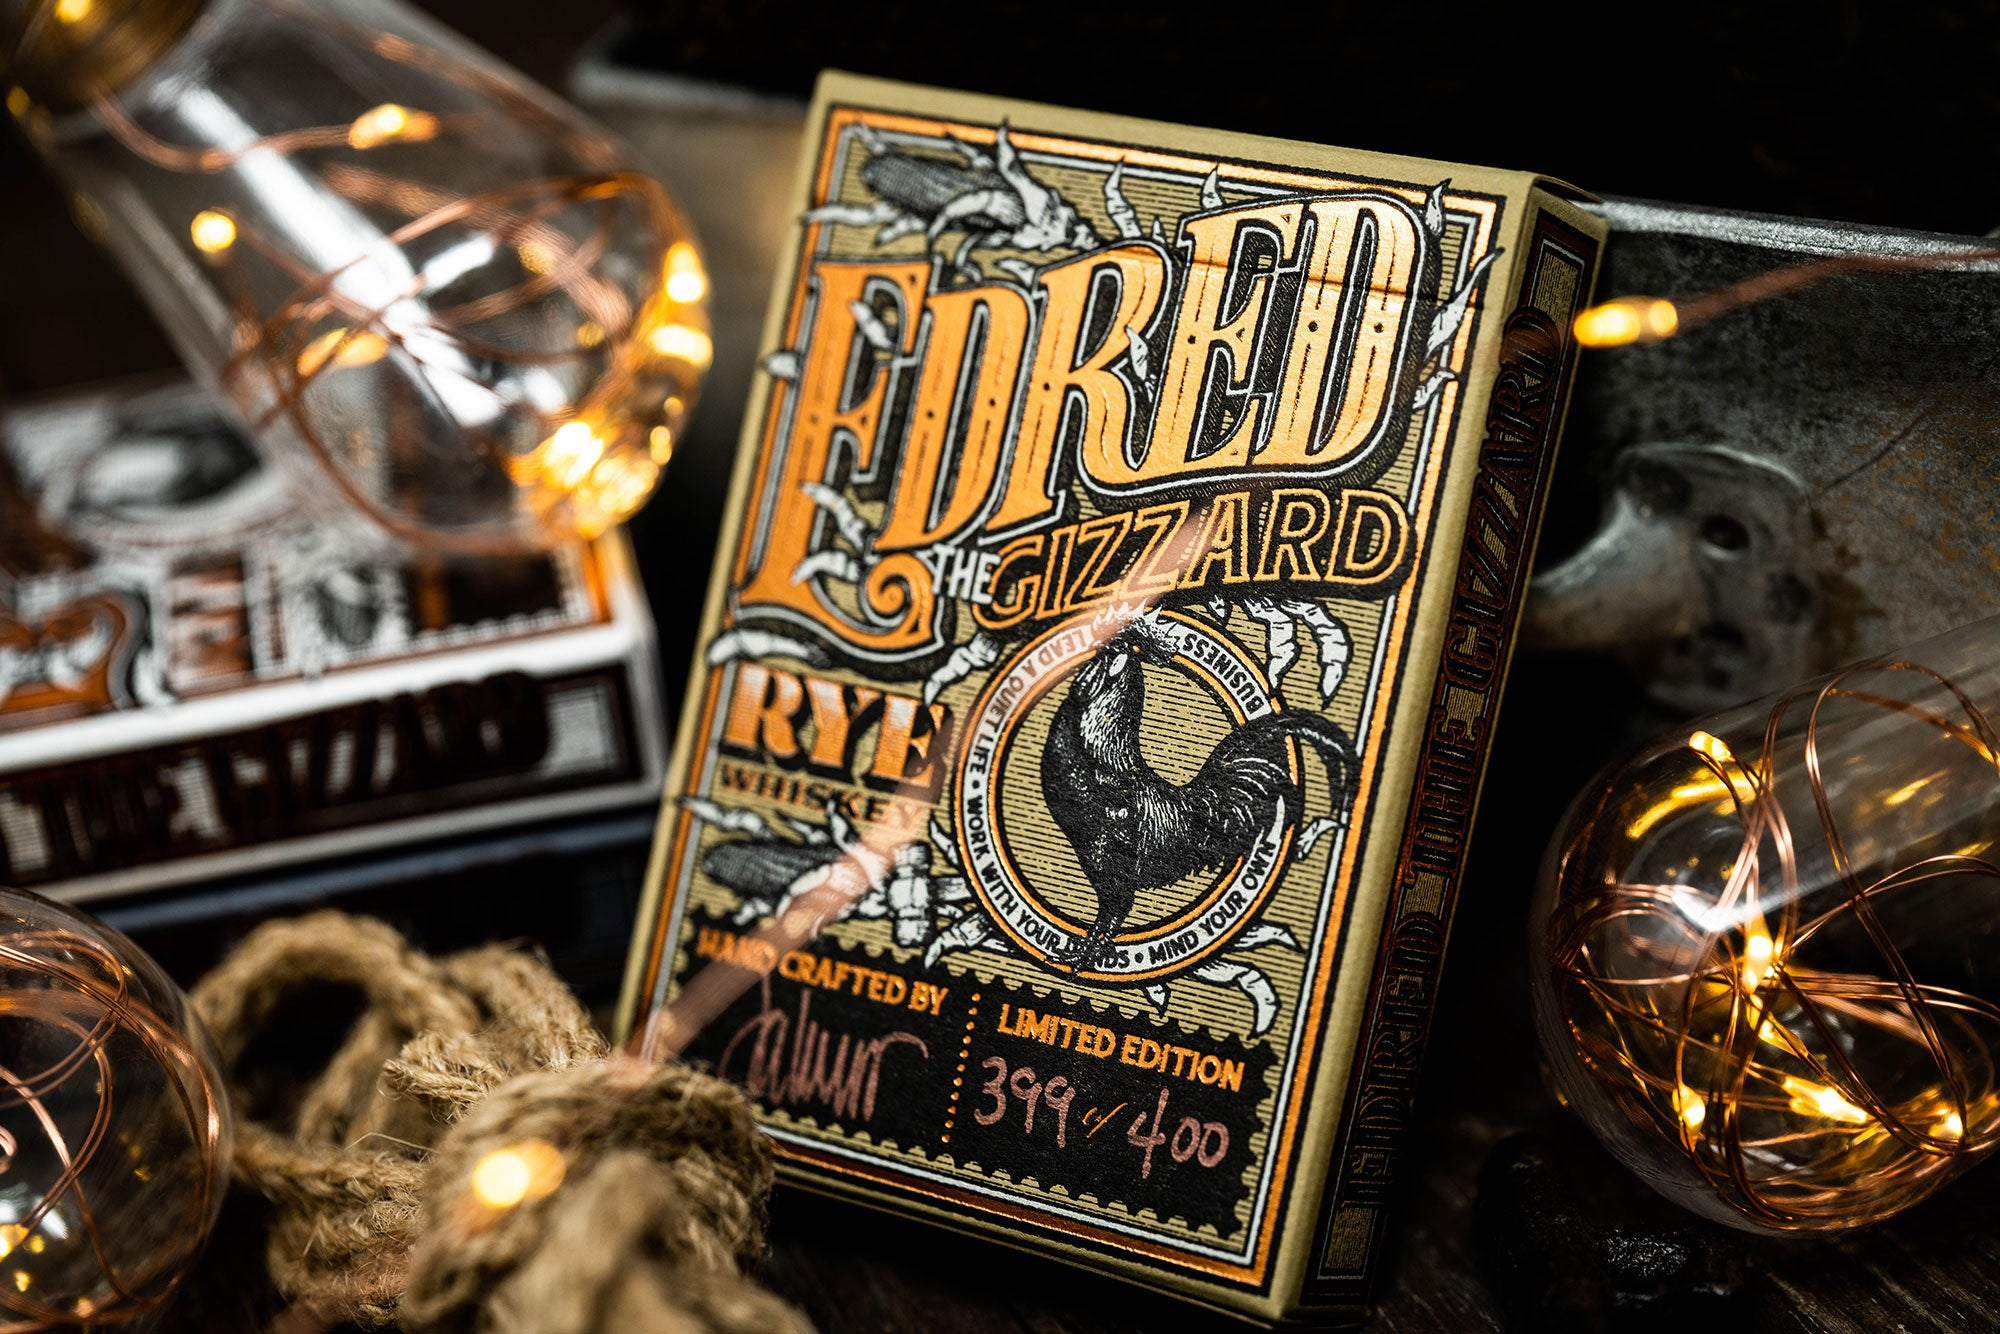 """13th Deck"" Edred The Gizzard - Limited Edition"